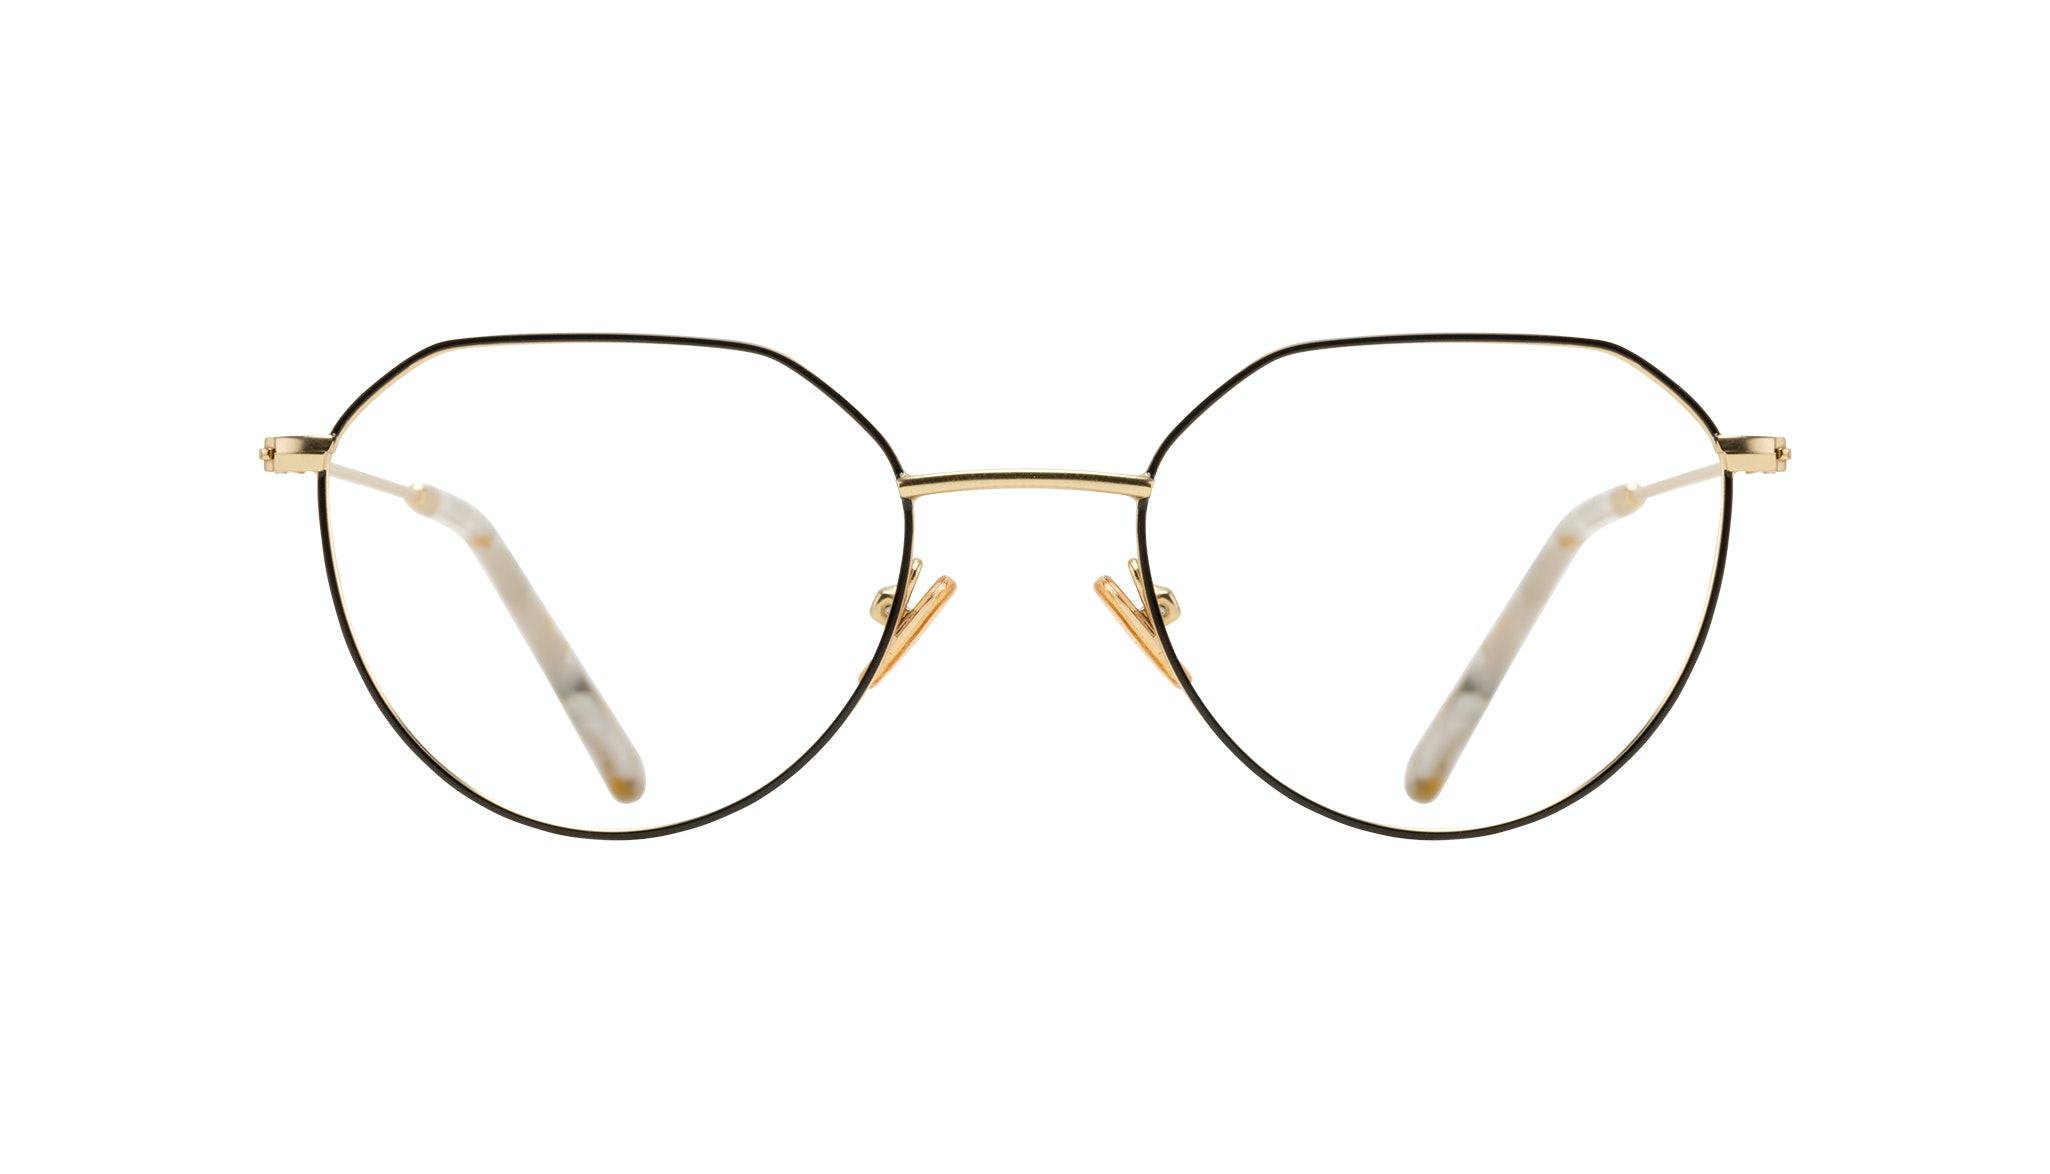 Affordable Fashion Glasses Round Eyeglasses Women Prism Deep Gold